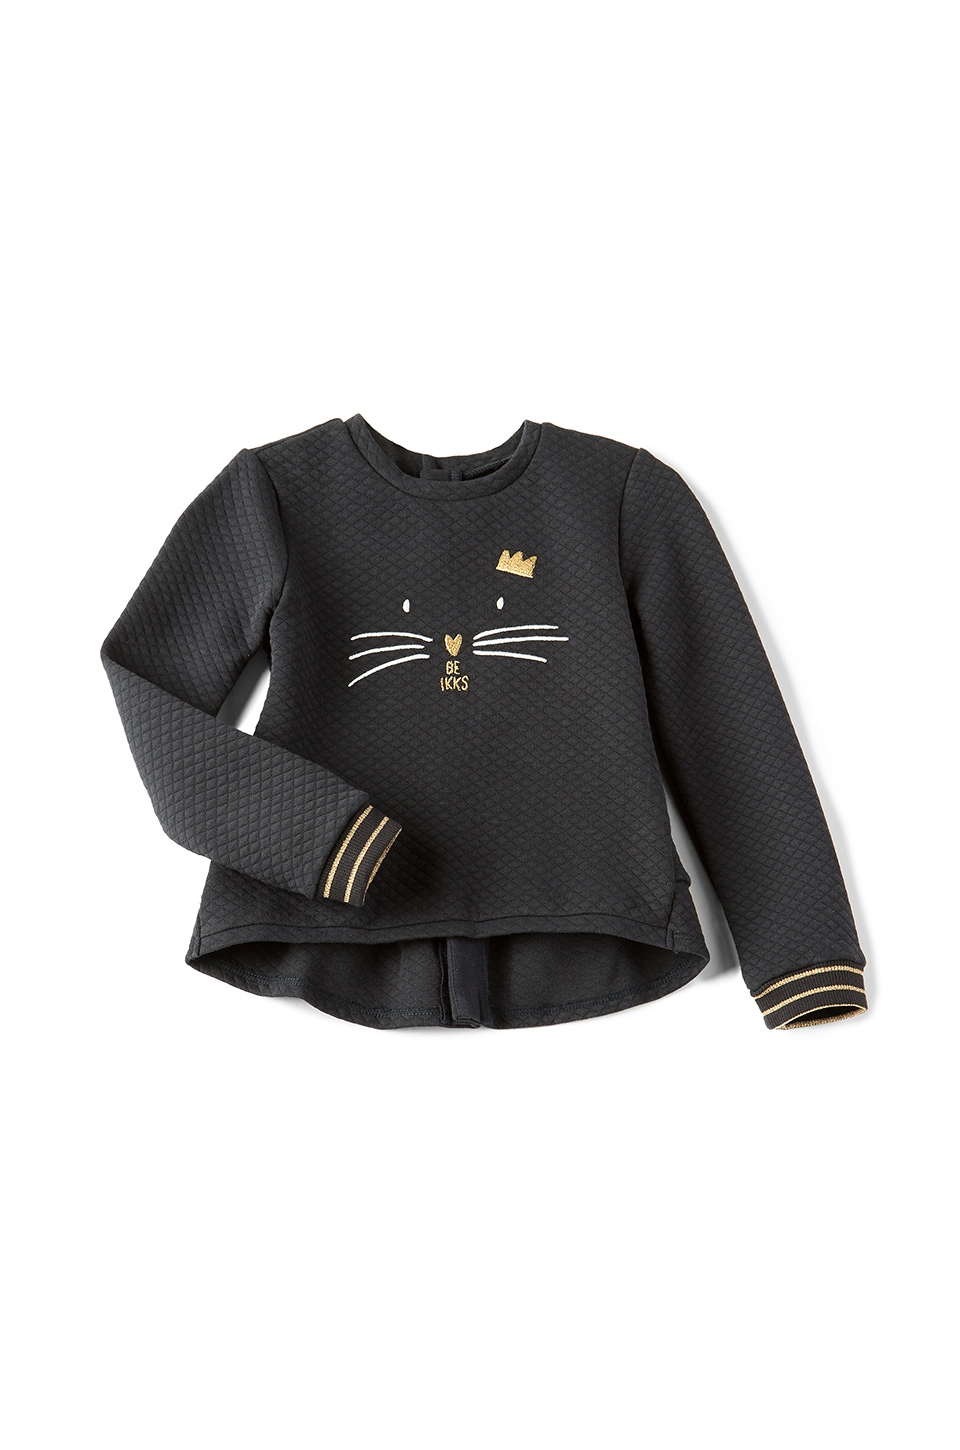 IKKS Paris Cat Sweatshirt in Navy